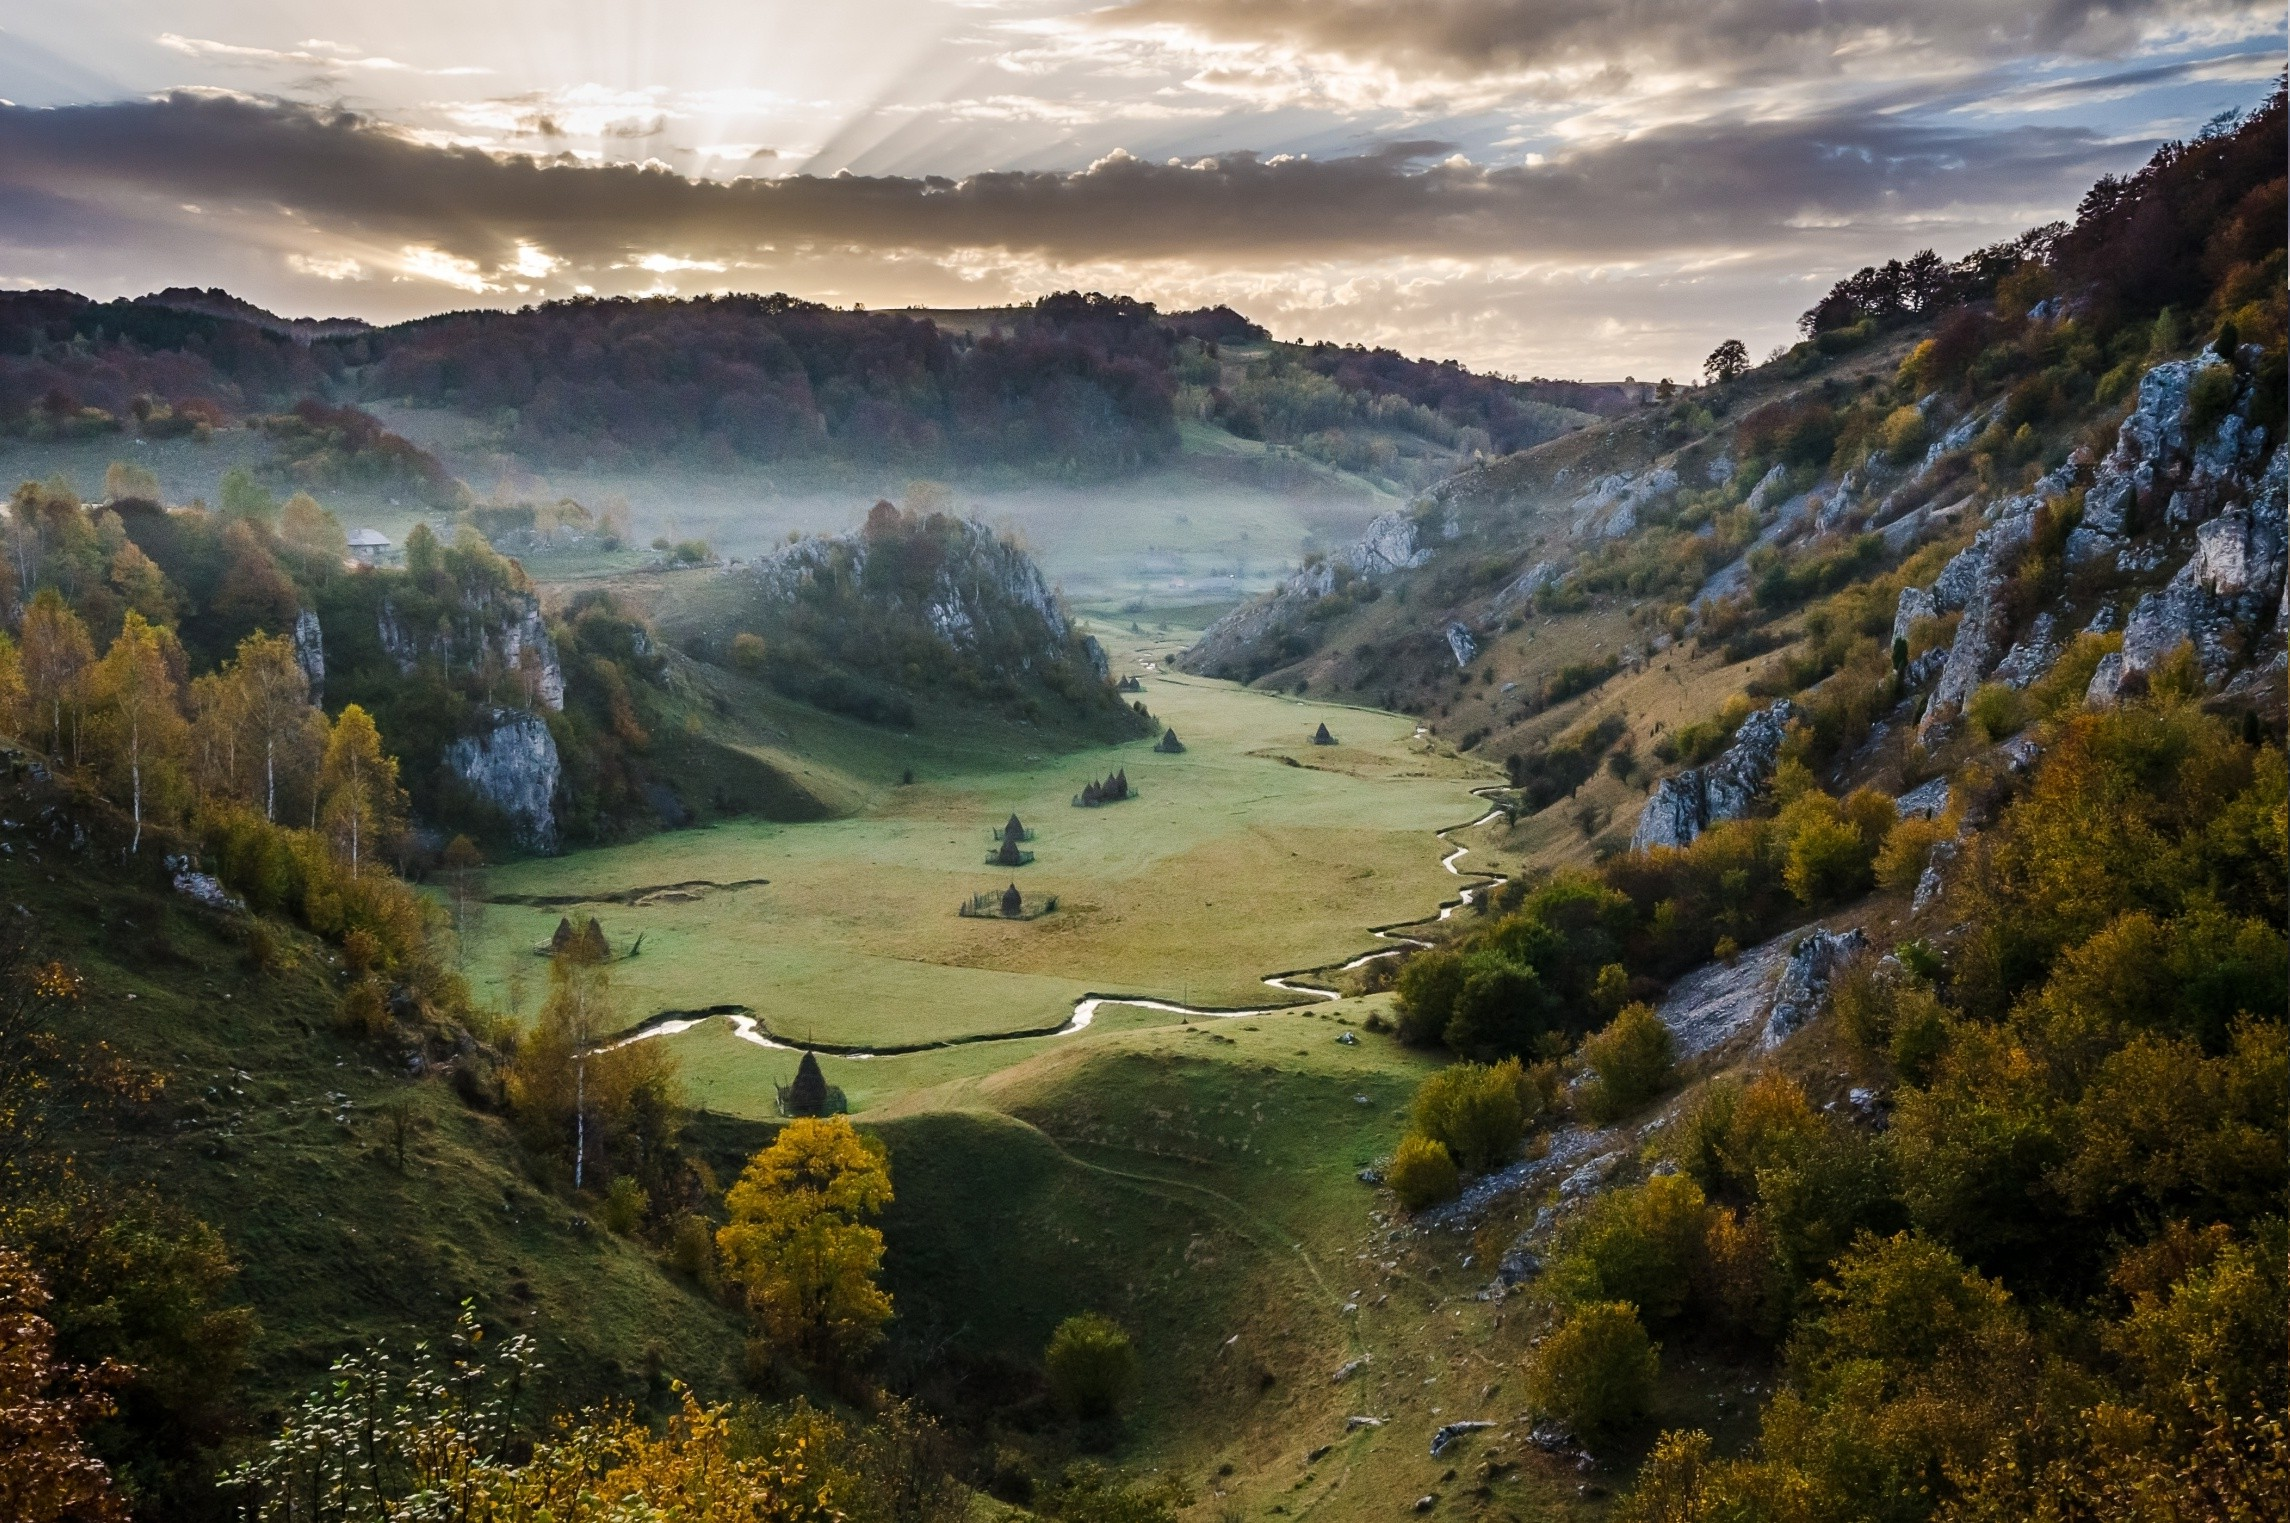 Fall In Love Wallpaper Free Download Fall Sunrise Mountain Valley Mist Grass Romania